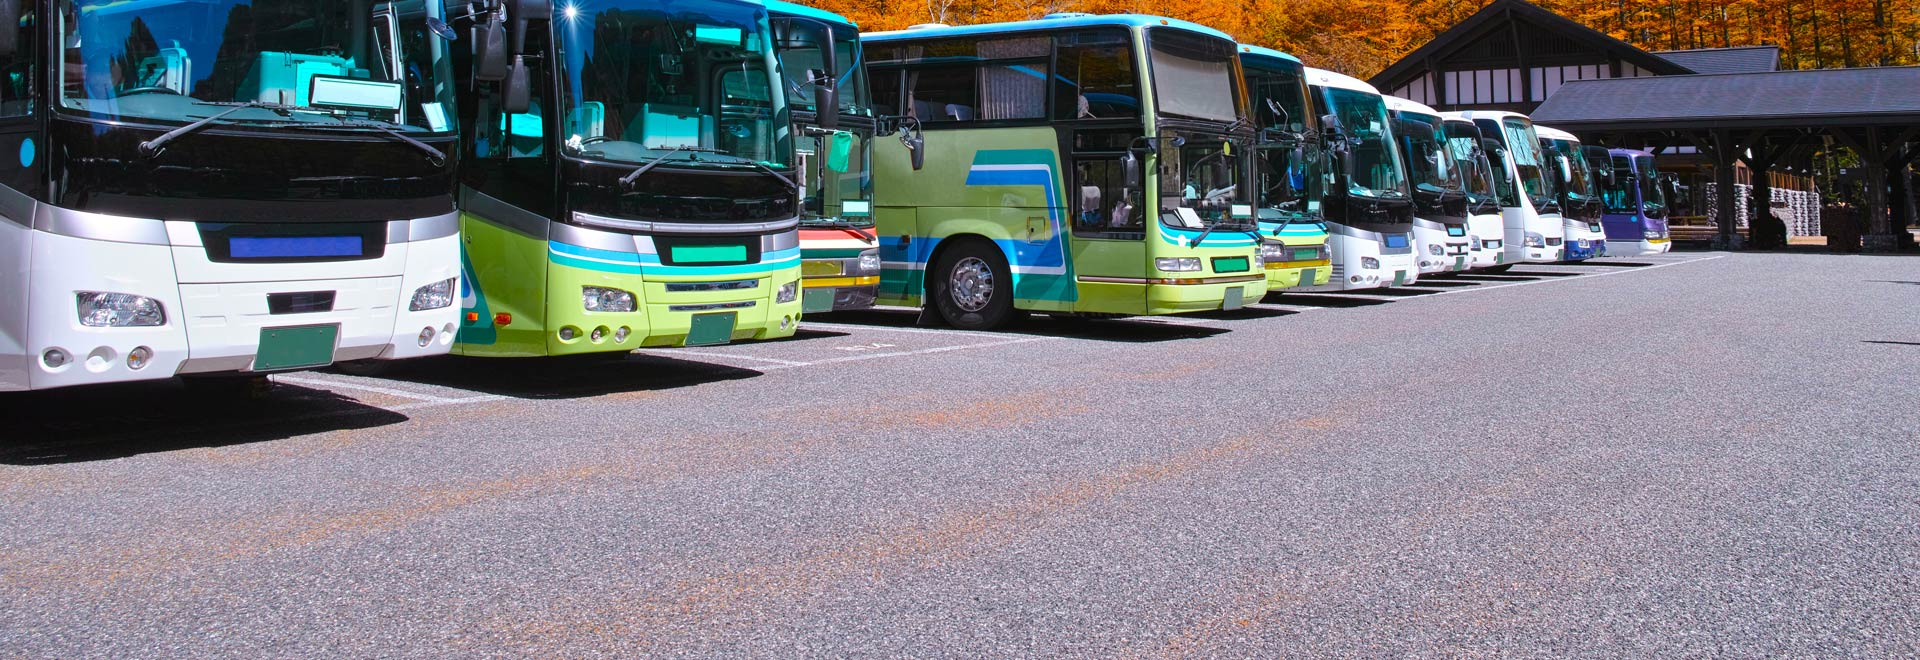 Rent a bus for 20, 50 or more people